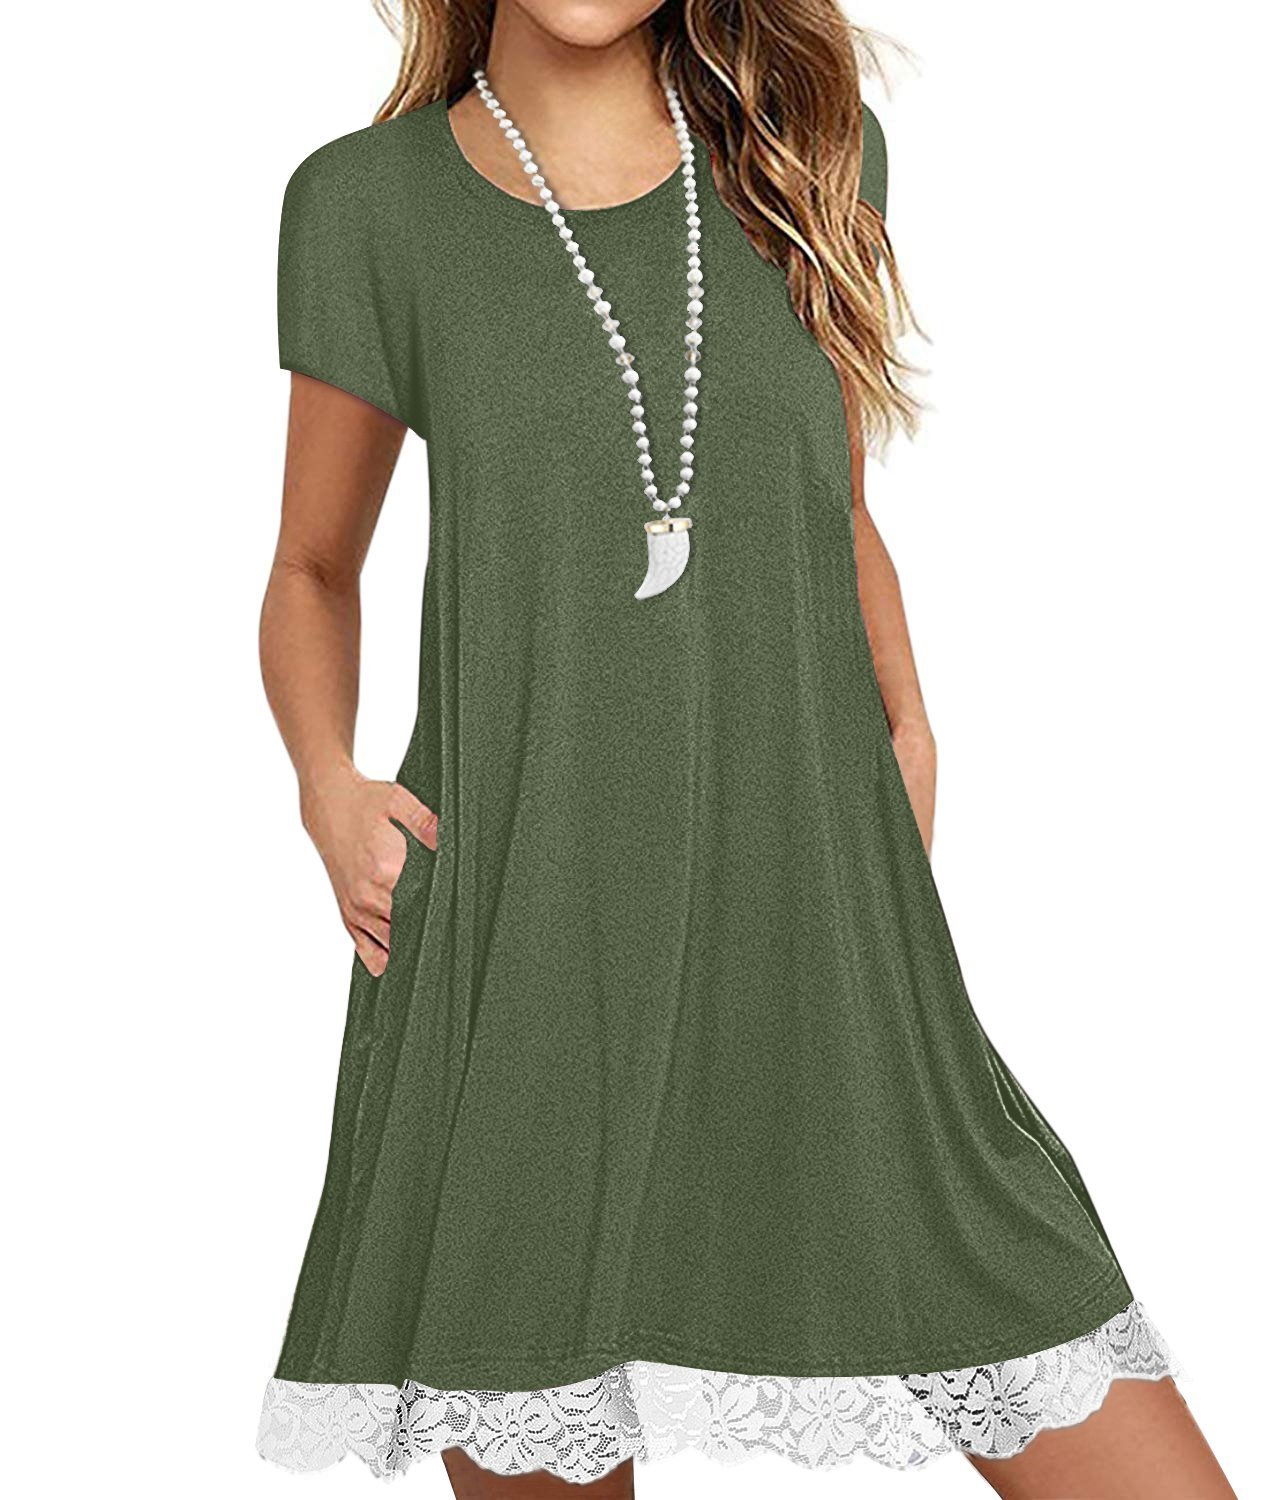 Eanklosco Womens Casual Short Sleeve Plain Pocket V Neck T Shirt Tunic Dress (Green-2, L)